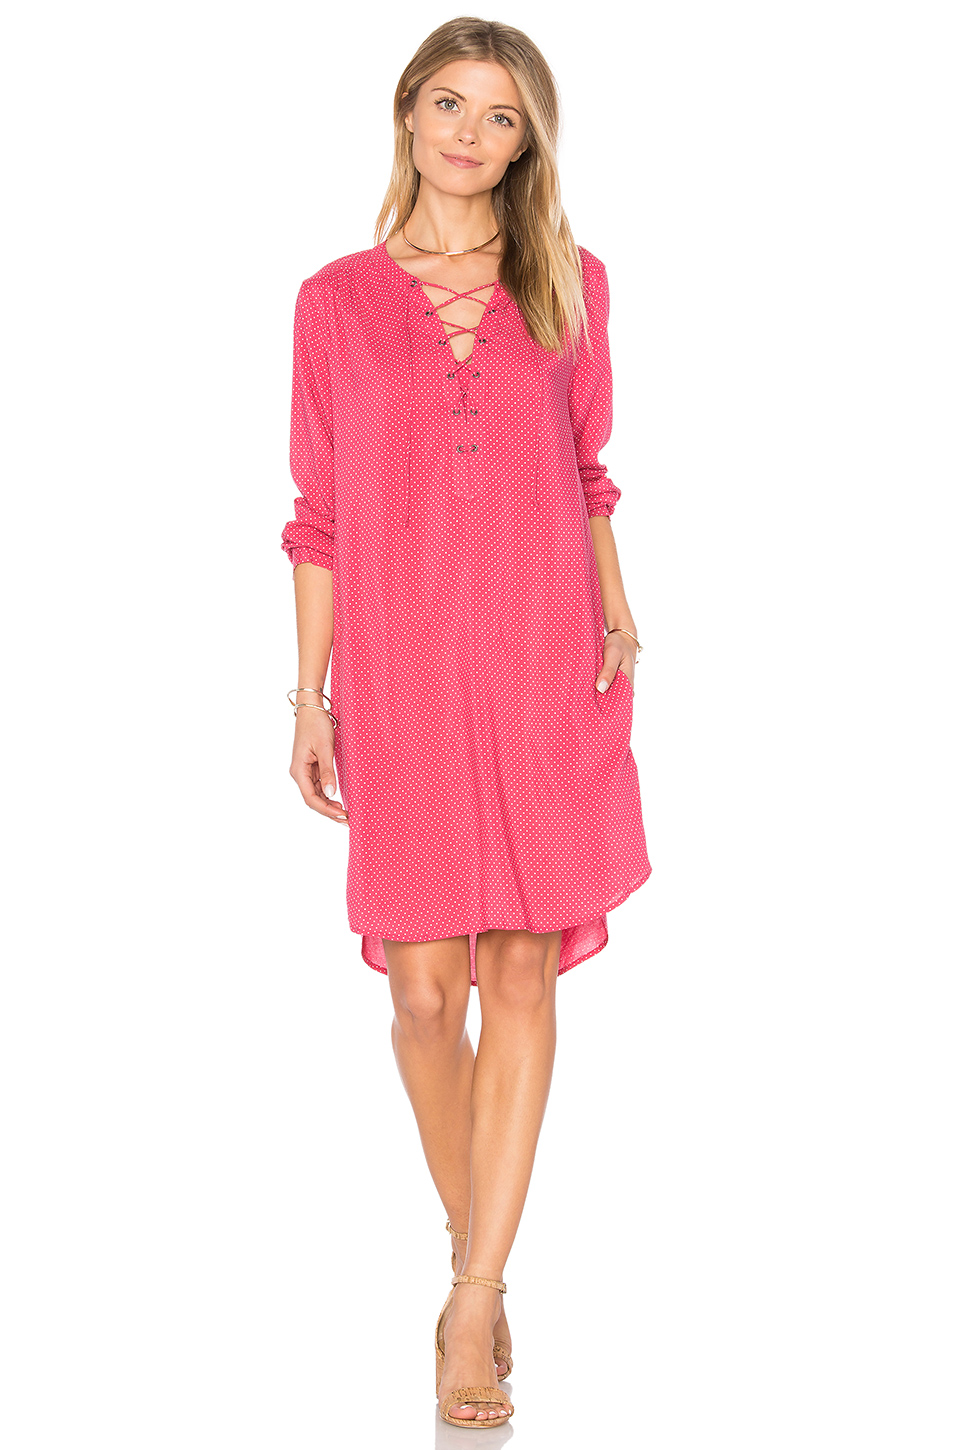 $81 - Velvet by Graham & Spencer Zoey Lace Up Dress